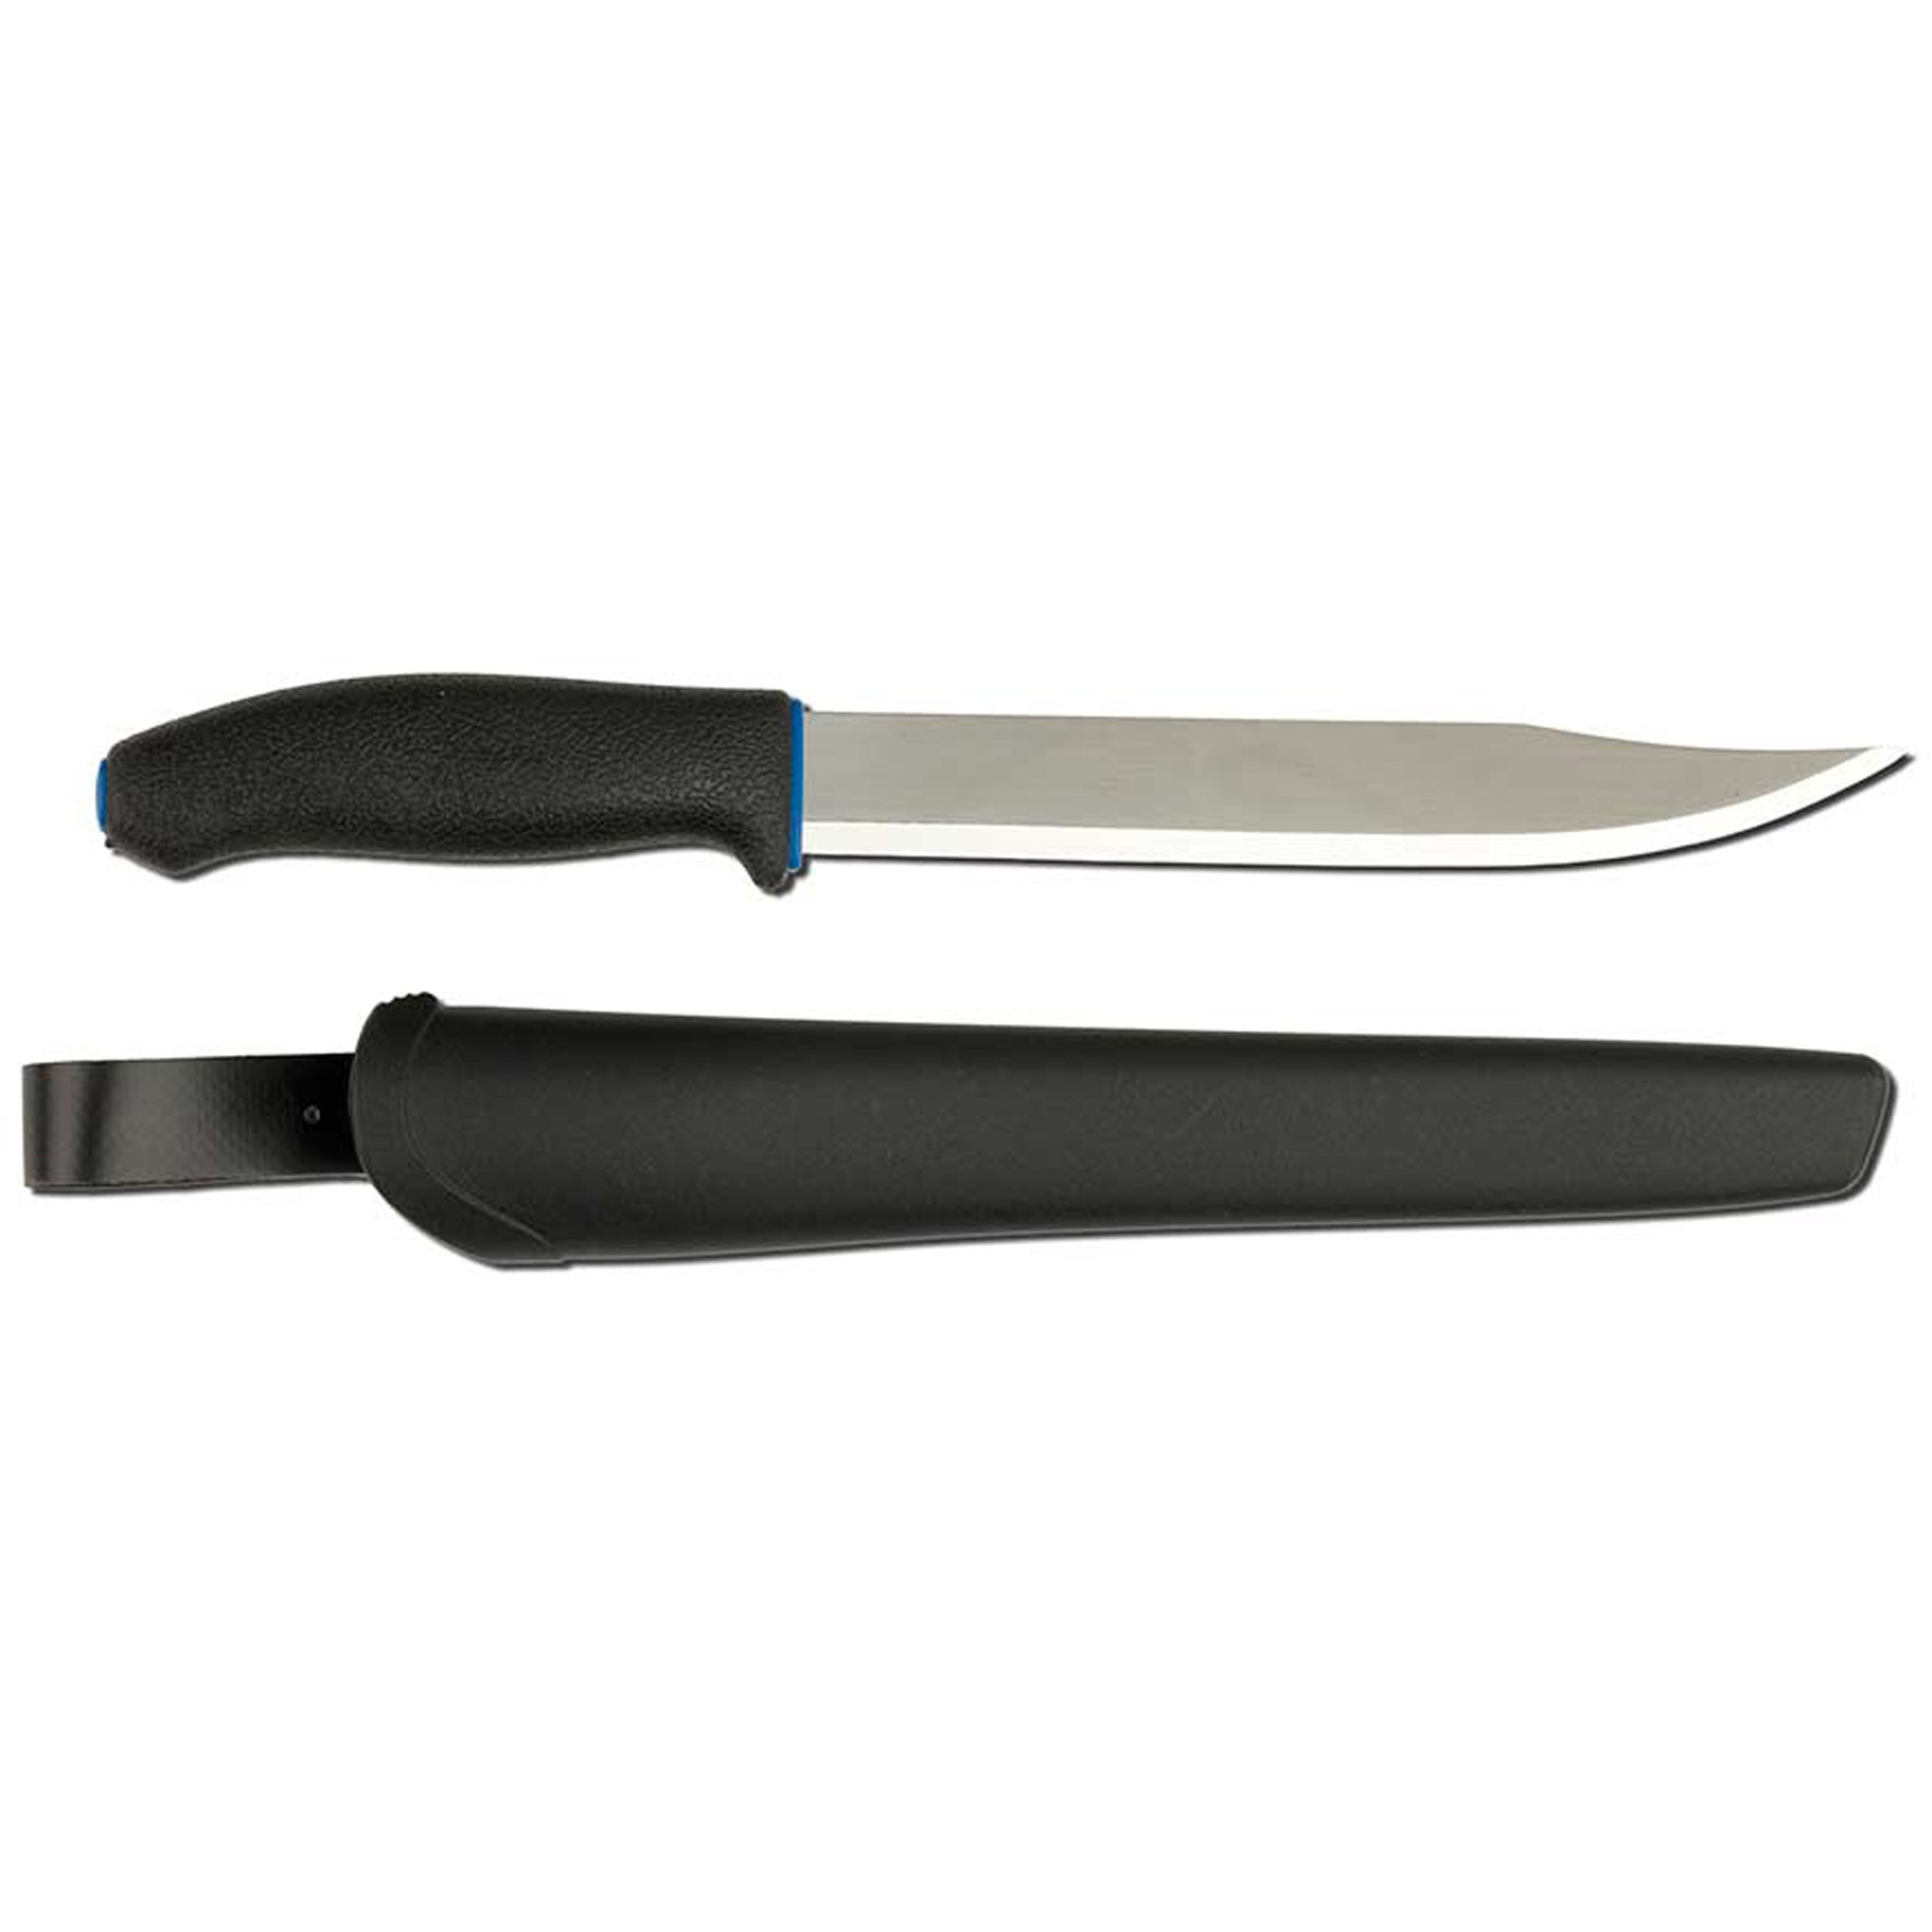 Morakniv Allround Multi-Purpose Fixed Blade Knife with Sandvik Stainless Steel Blade, 4.0-Inch